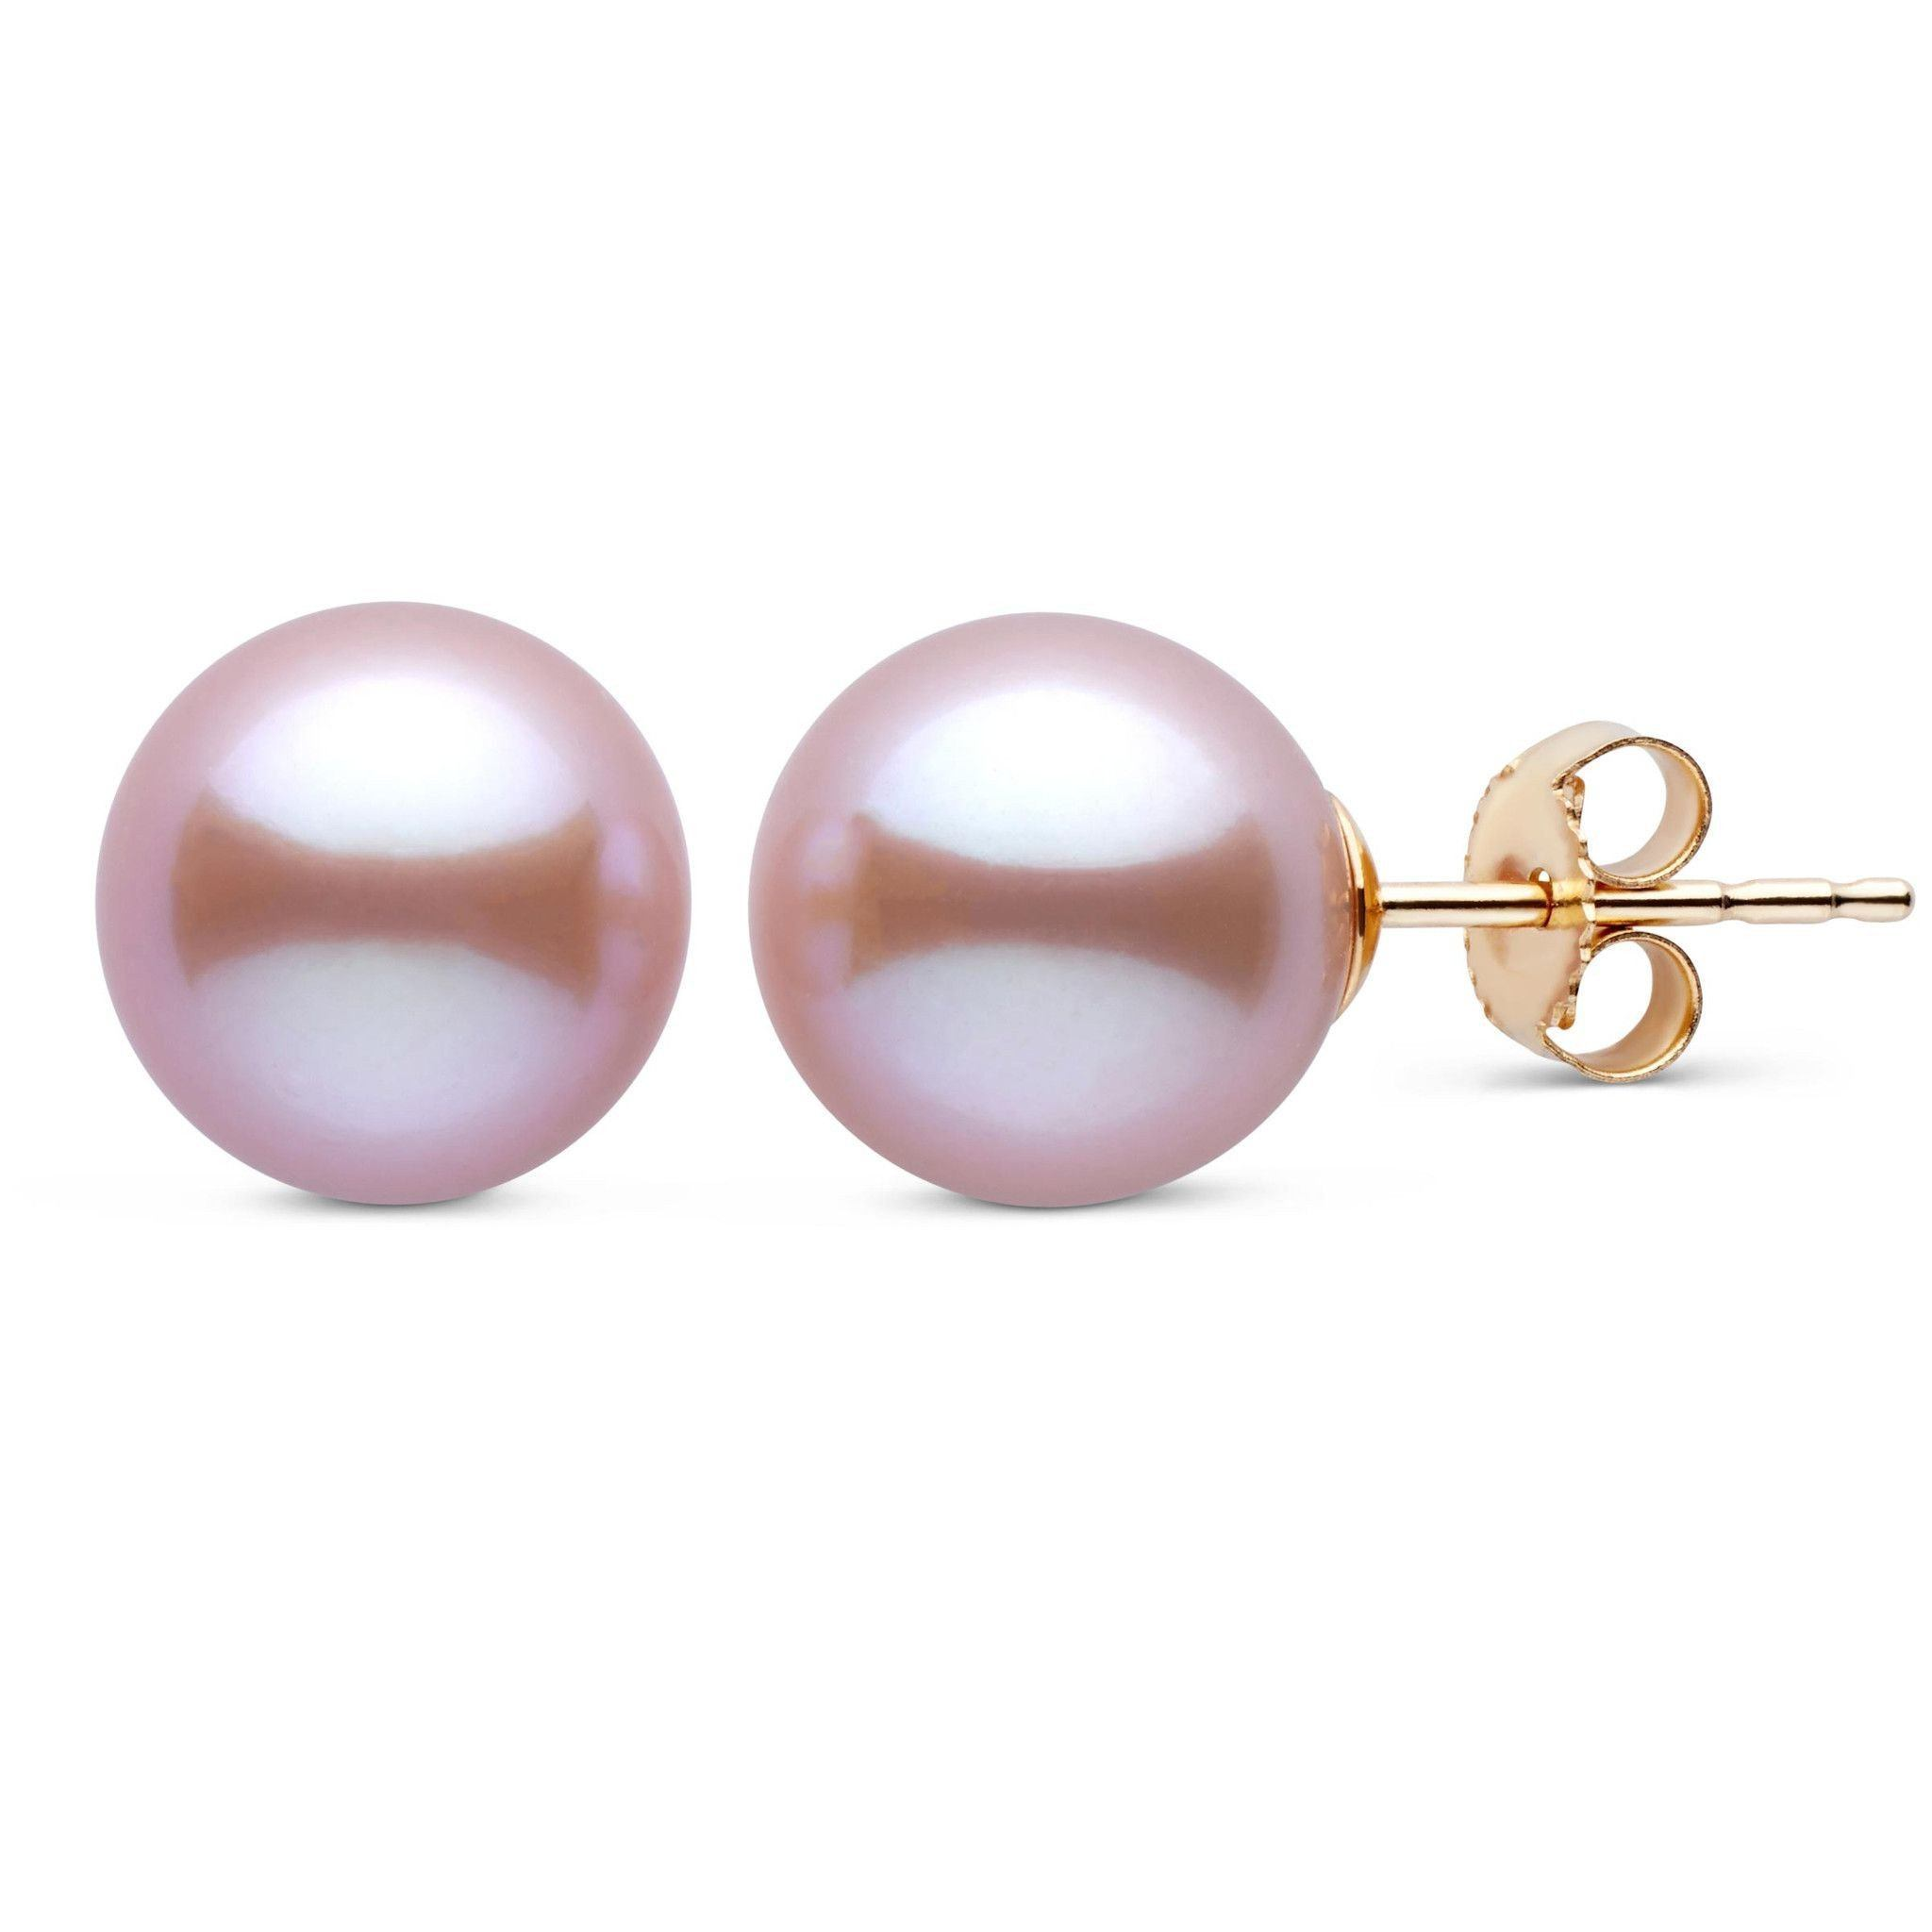 9.5-10.0 mm Lavender Freshadama Freshwater Pearl Stud Earrings